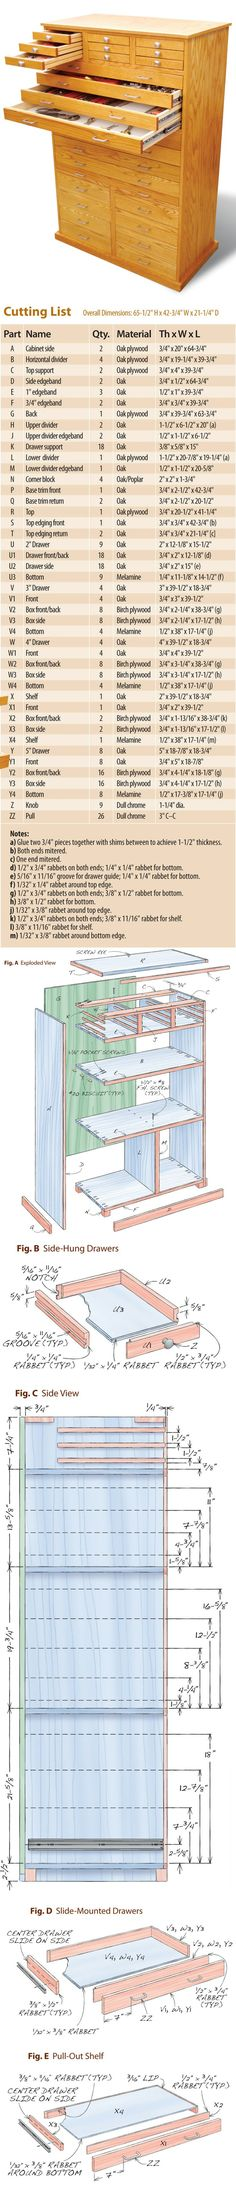 Tips for Building Cabinets with Pocket-Hole Joinery - Woodworking Techniques - American Woodworker 284 23 1 Bill Moeller Woodworking - Cabinetry Comment Pin it Send Like Learn more at familyhandyman.com familyhandyman.com from The Family Handyman DIY Tips for Your Garage Garage organization ideas - mobile,versatile workbench 794 59 1 Sara Georgeff-Aber Garage myriam volcy Looking for a cute dress.